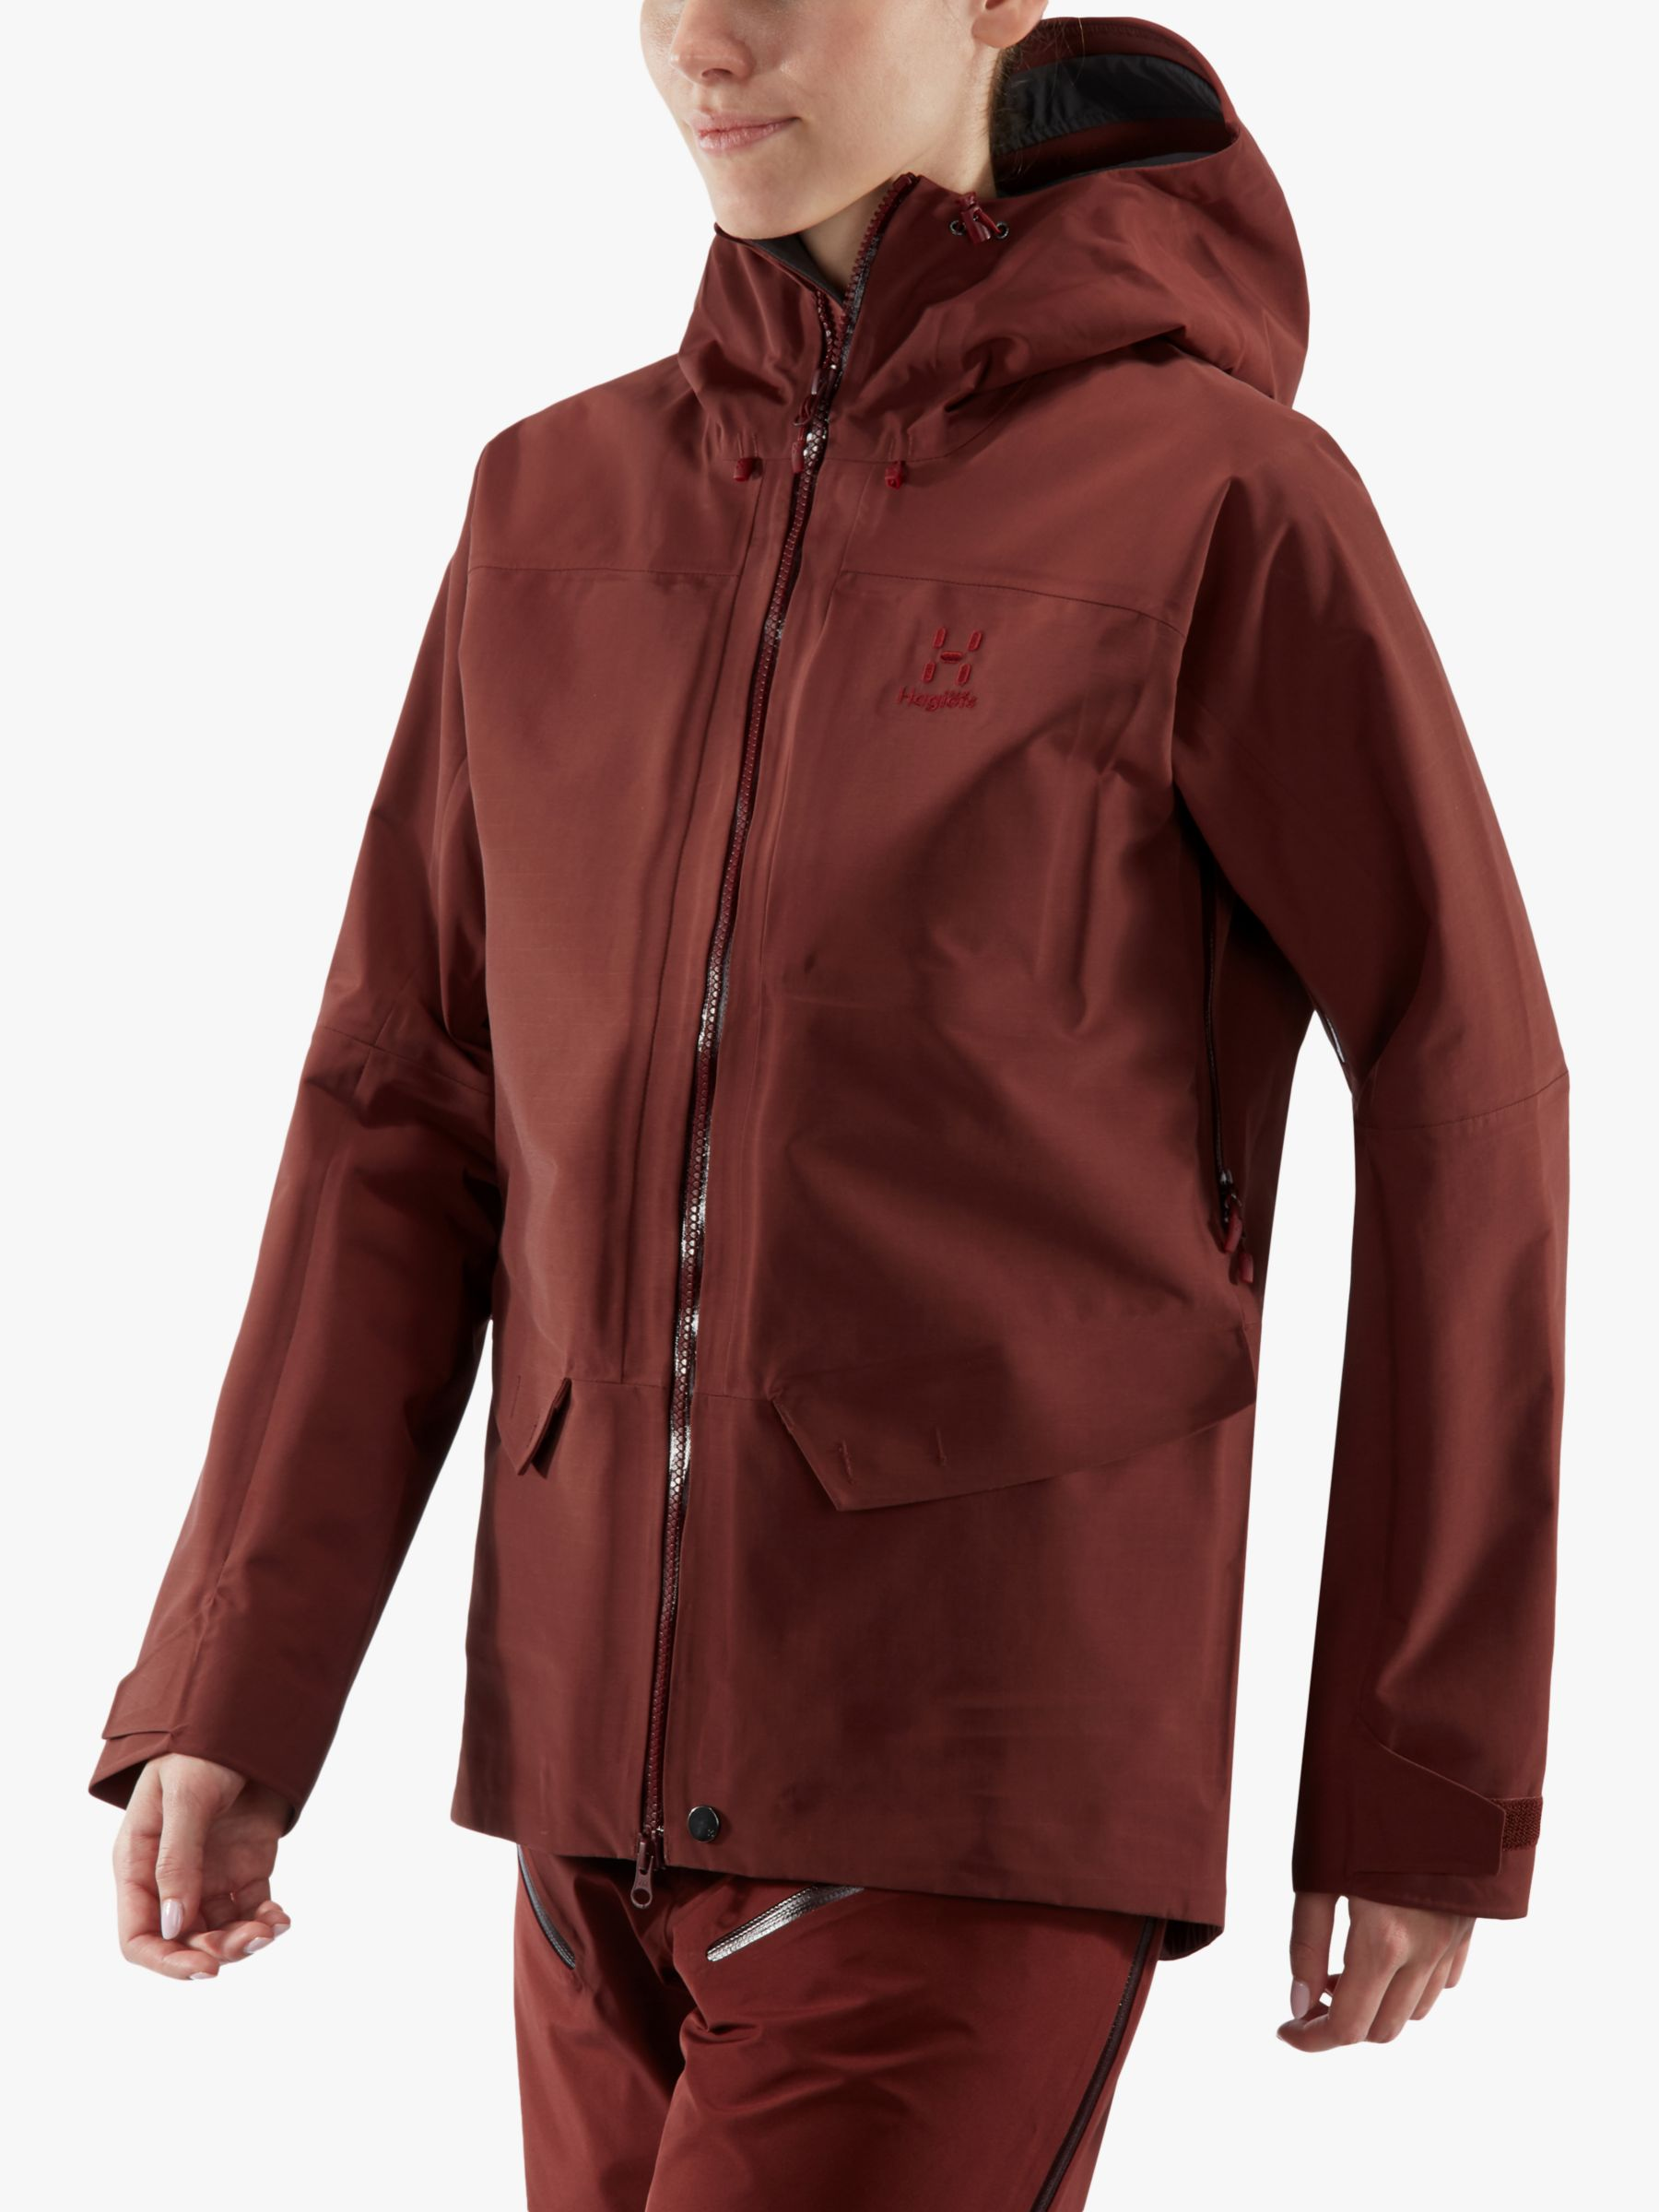 Haglofs Haglöfs Grym Evo Women's Waterproof Jacket, Maroon Red